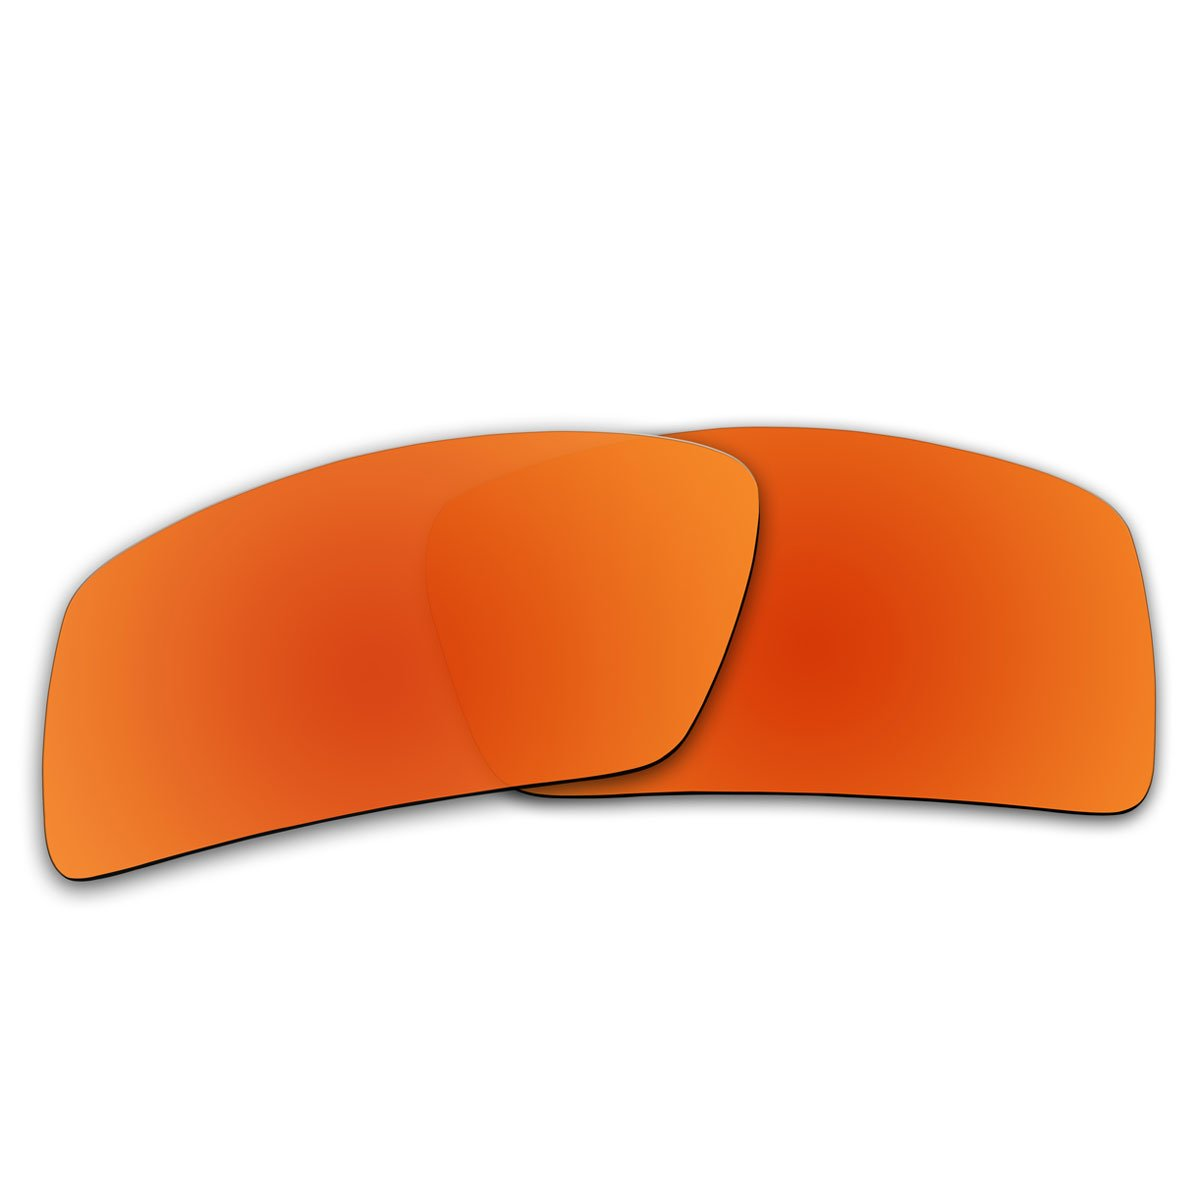 93b7a2282a8 Amazon.com  ACOMPATIBLE Replacement Lenses for Oakley Eyepatch 2 Sunglasses  OO9136 (Fire Red - Polarized)  Home Improvement